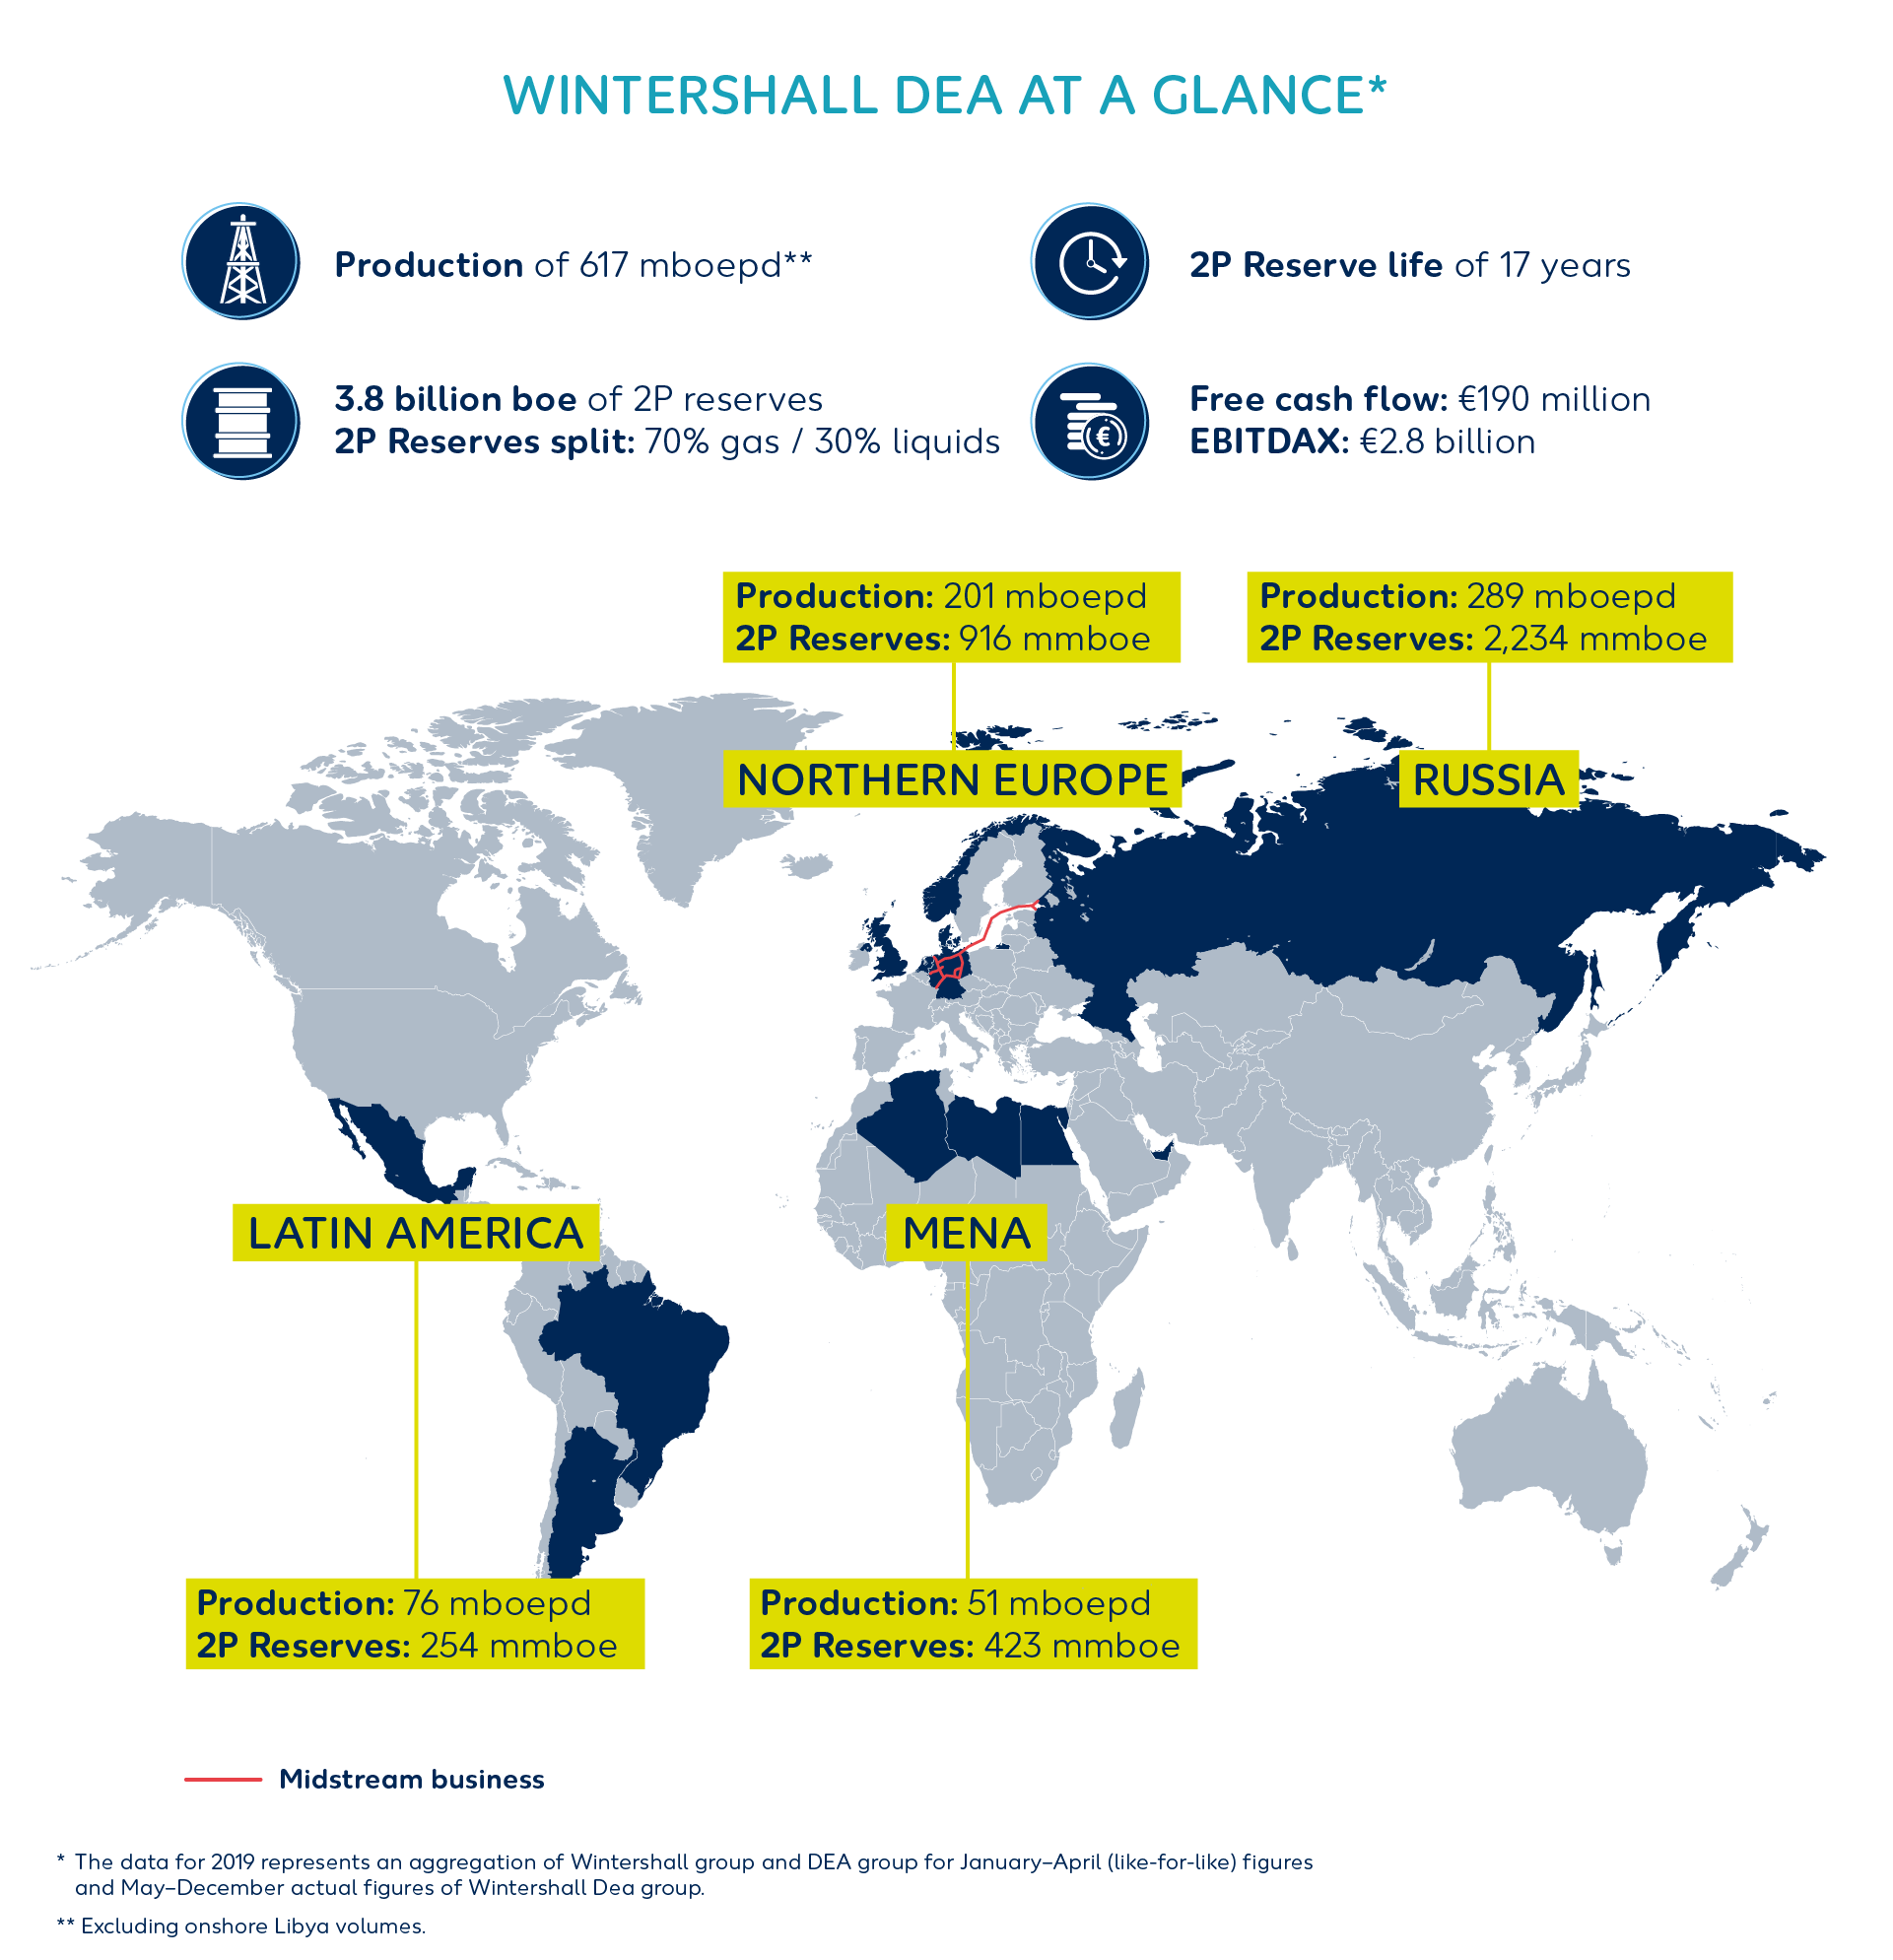 Wintershall Dea at a glance Q4